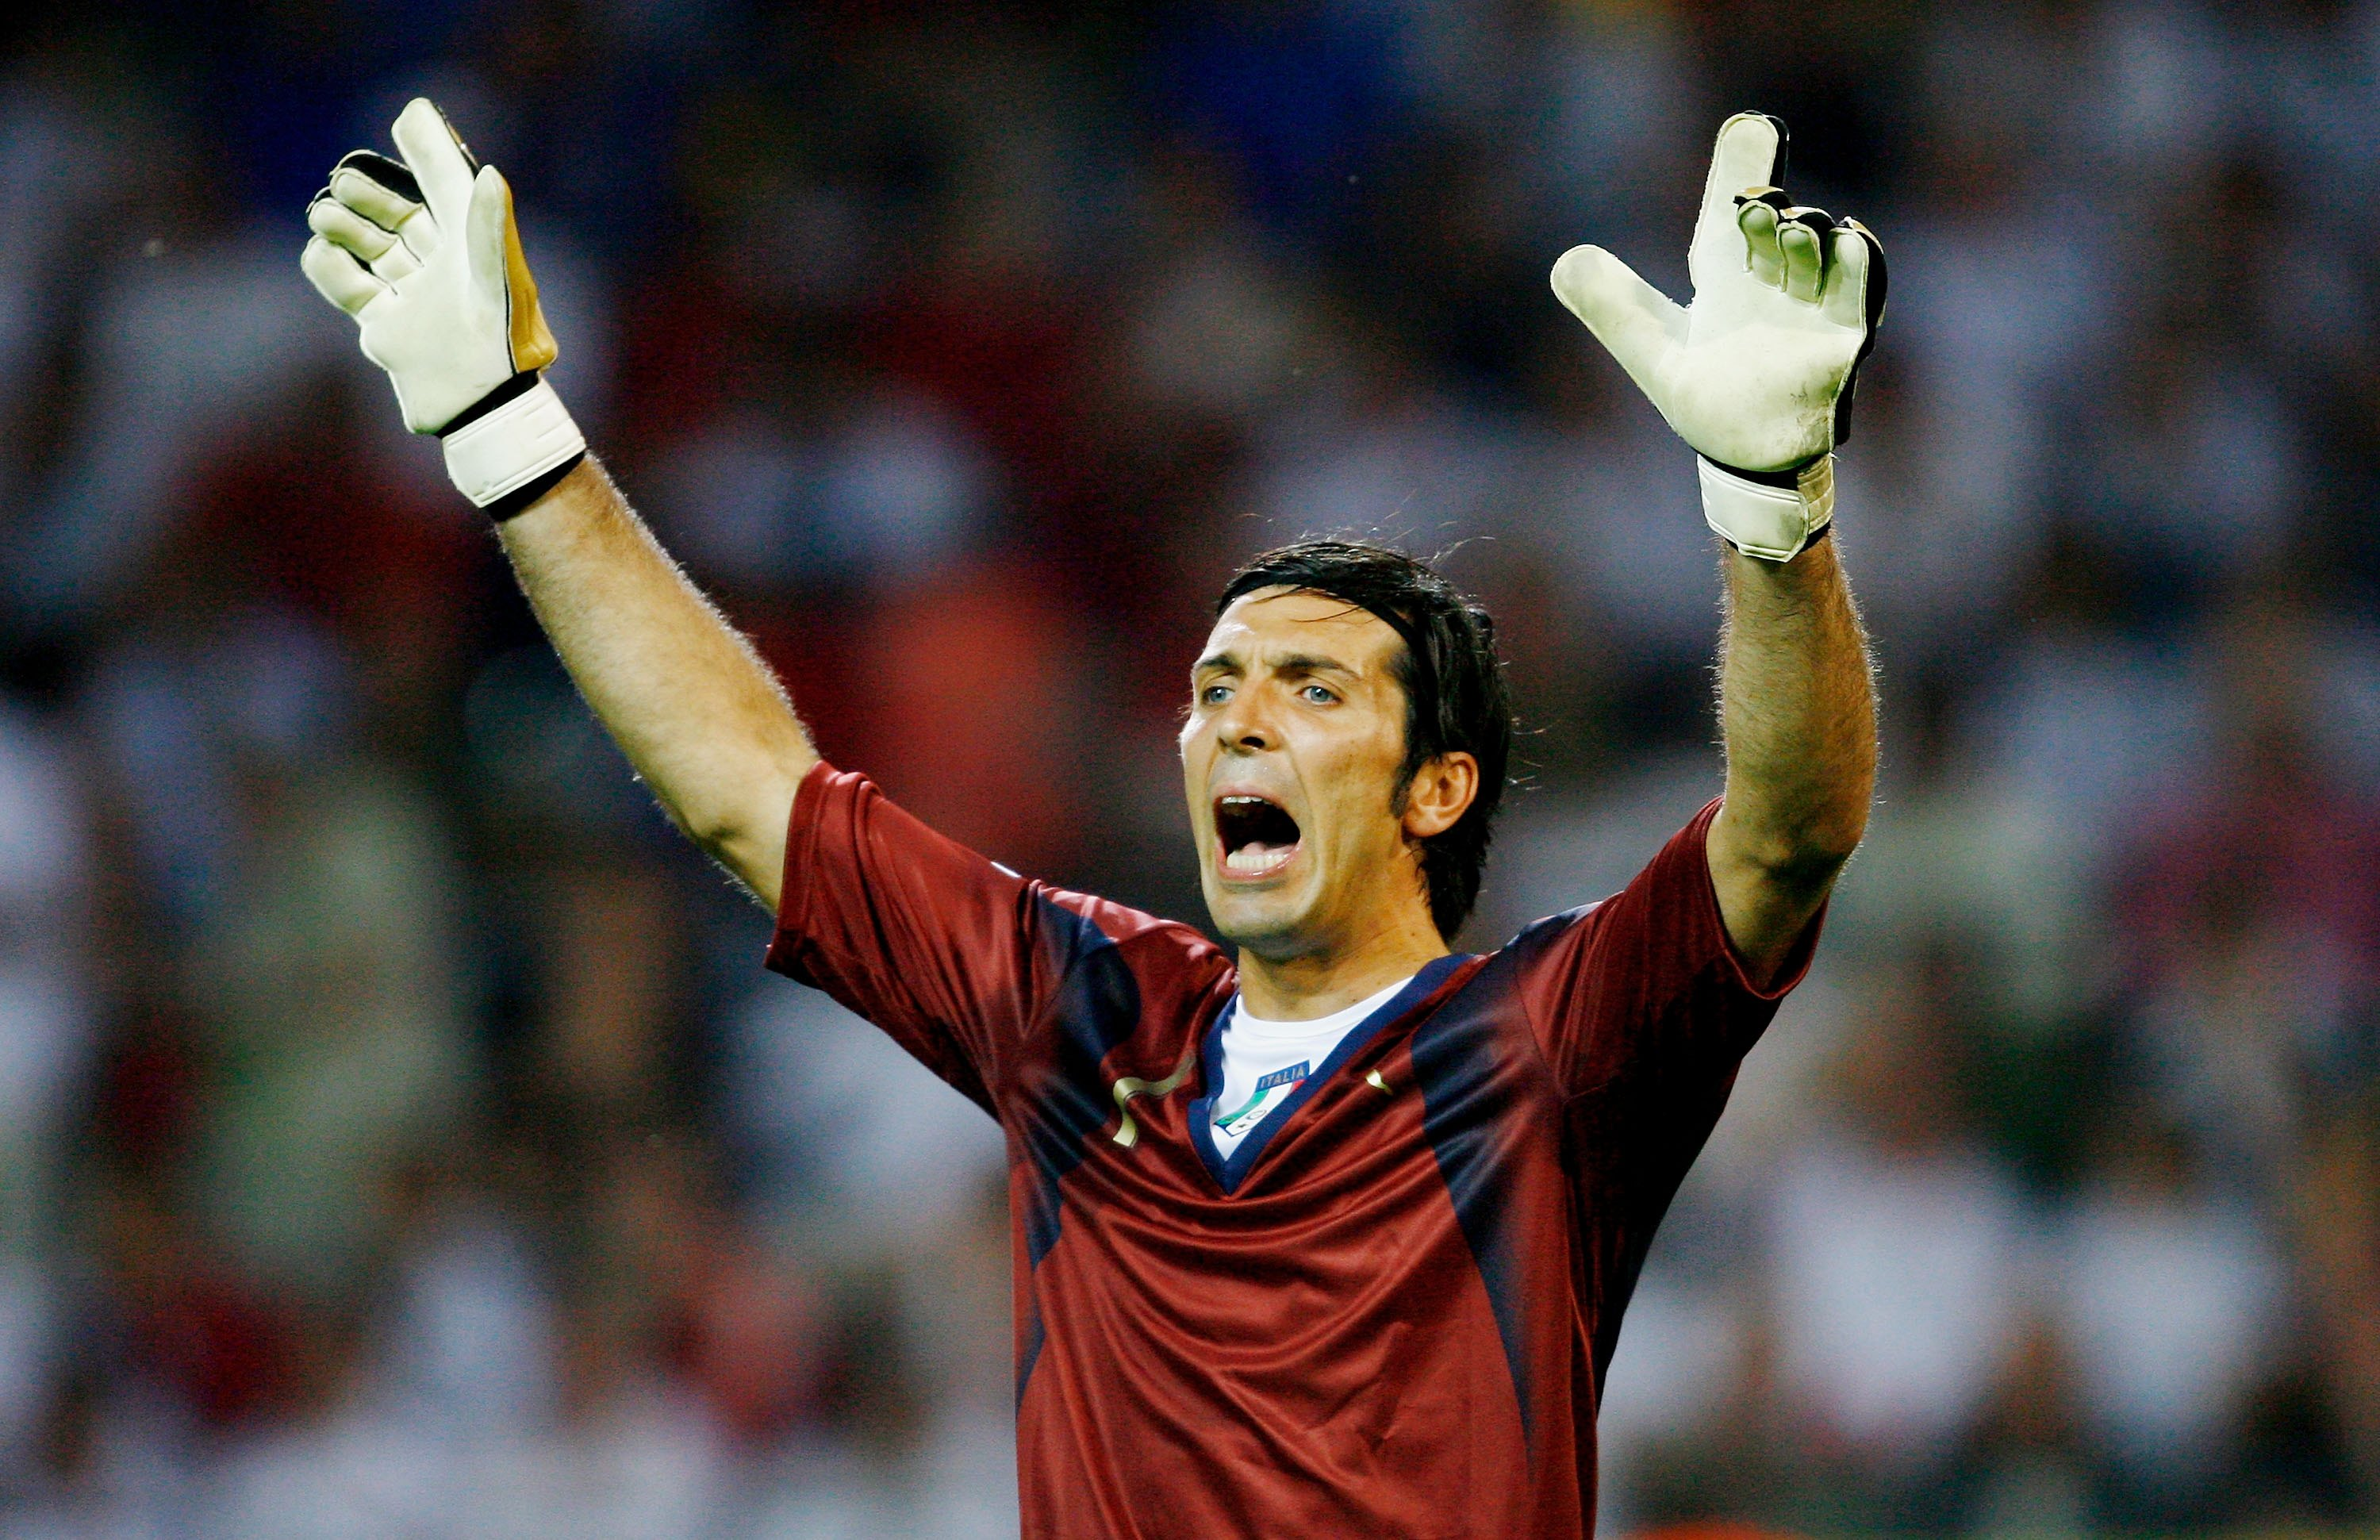 DORTMUND, GERMANY - JULY 04: Gianluigi Buffon of Italy gestures during the FIFA World Cup Germany 2006 Semi-final match between Germany and Italy played at the Stadium Dortmund on July 04, 2006 in Dortmund, Germany.  (Photo by Shaun Botterill/Getty Images